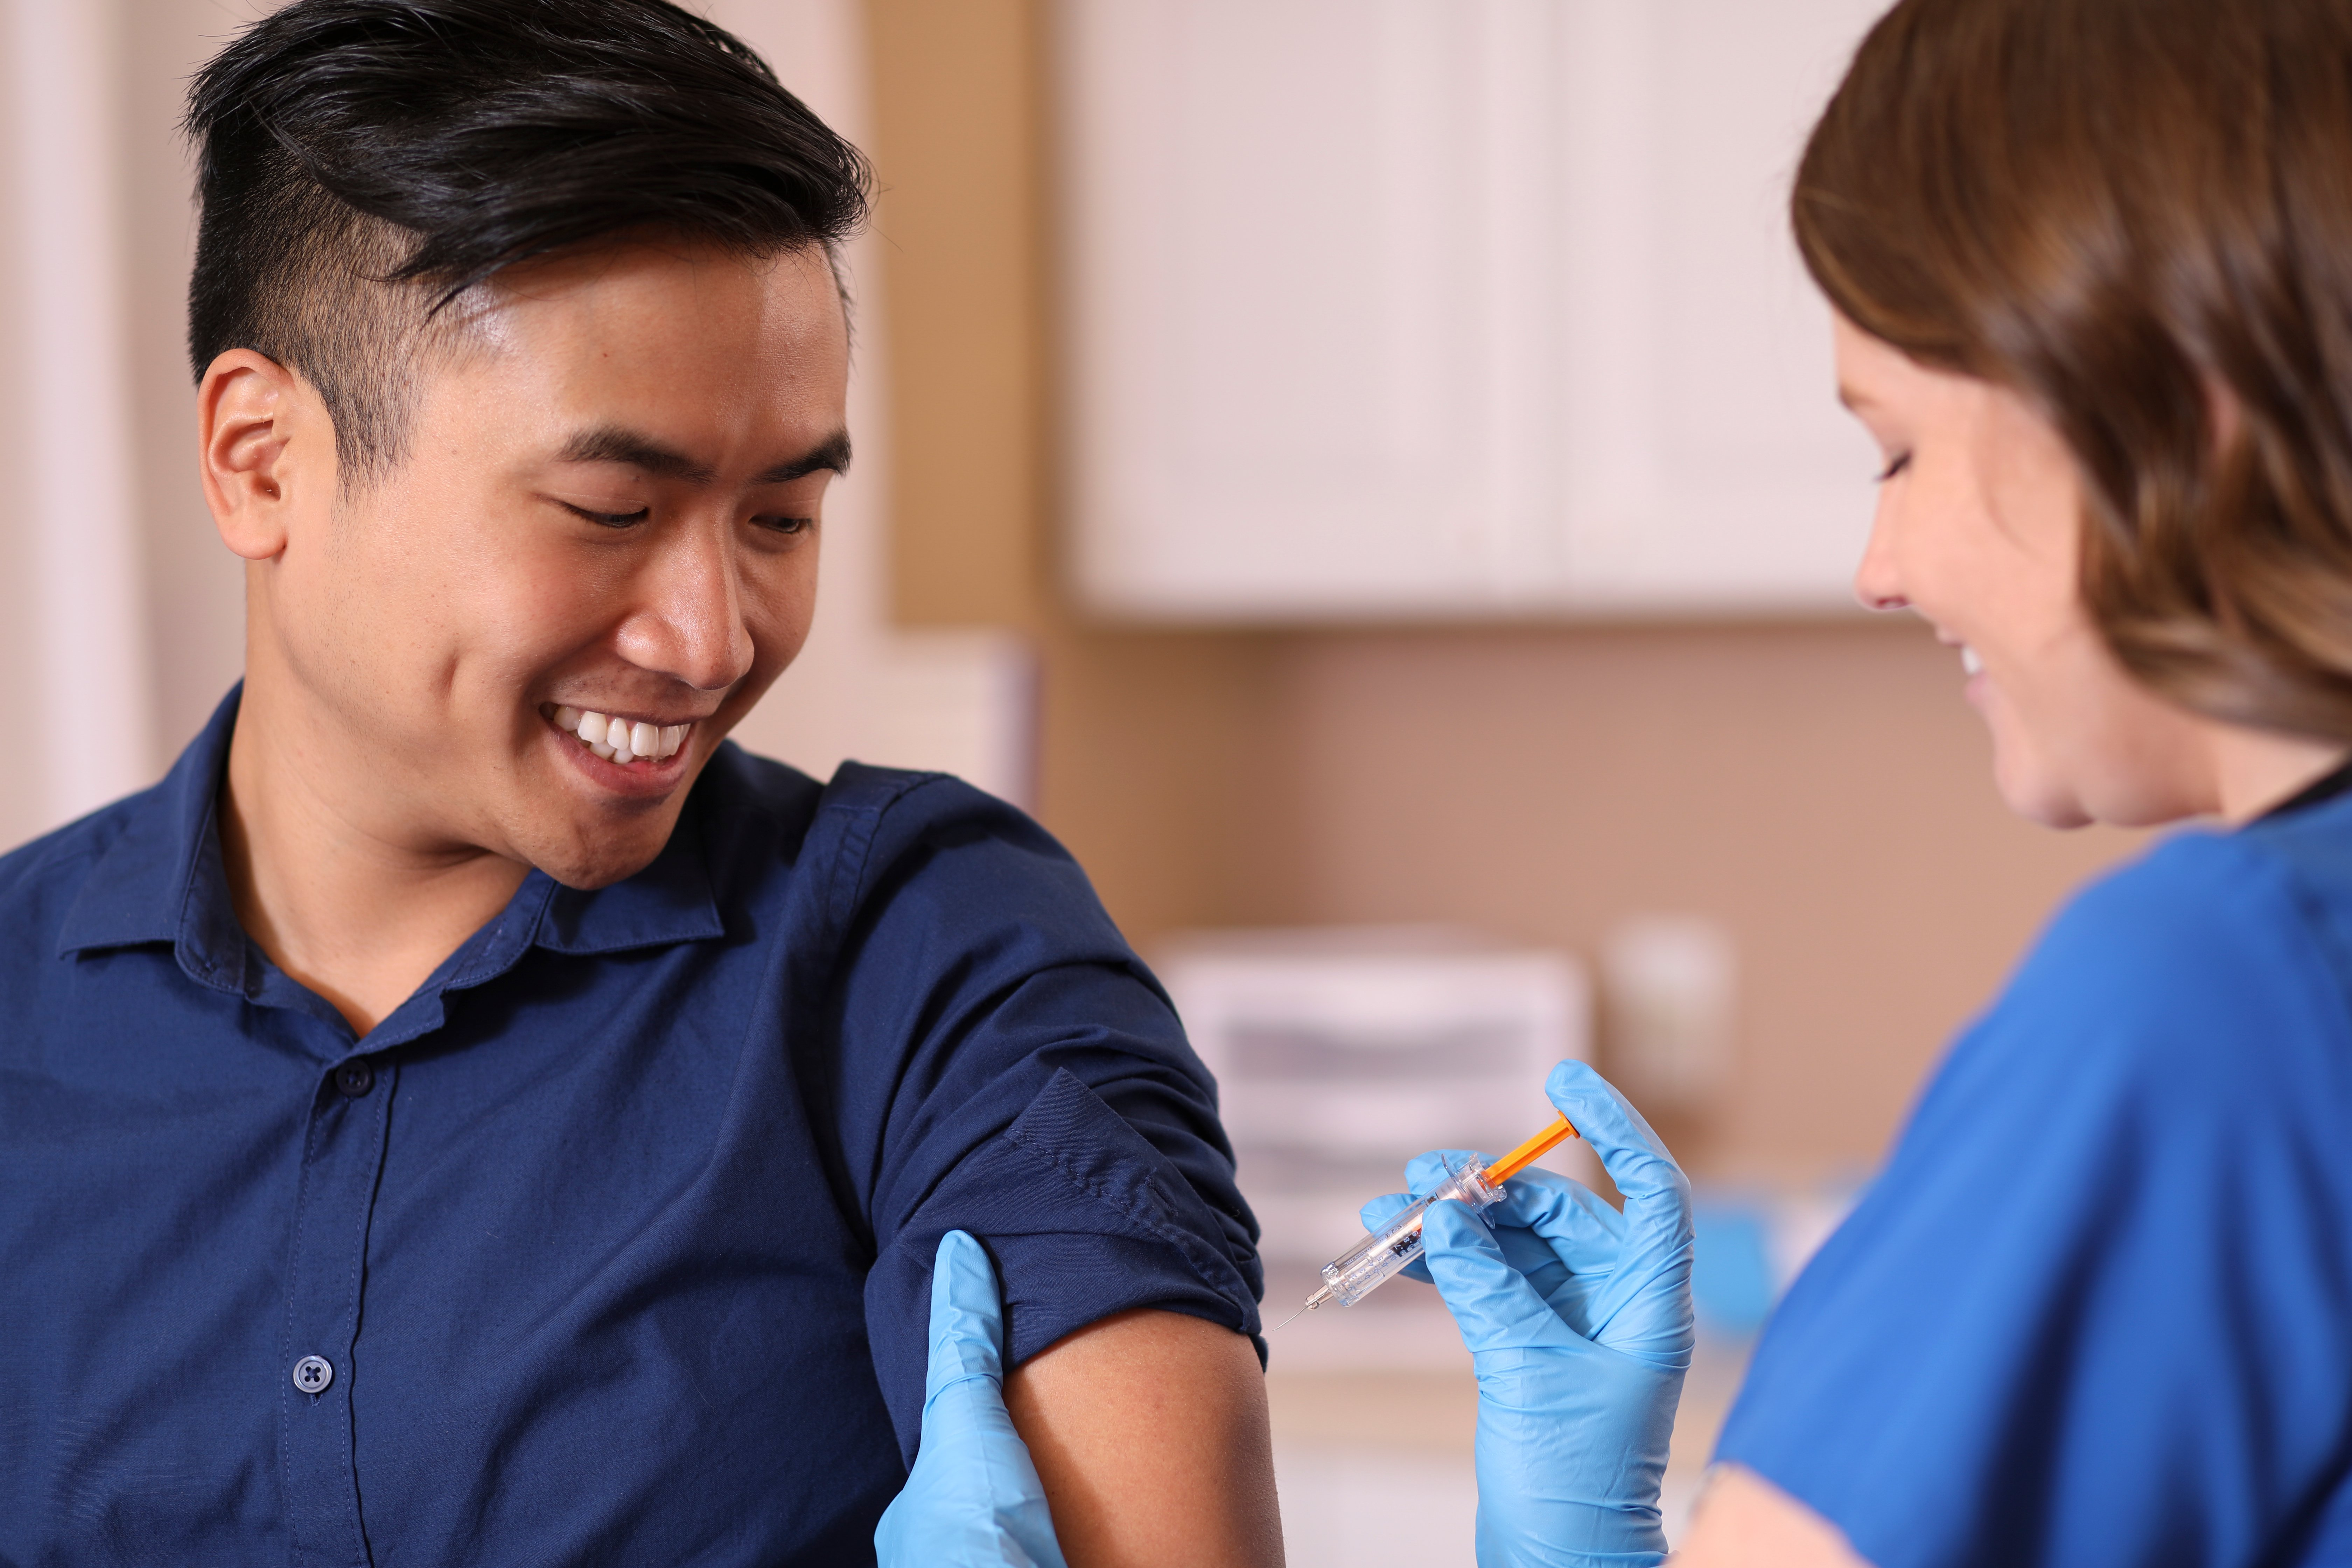 Are flu shots covered by insurance?